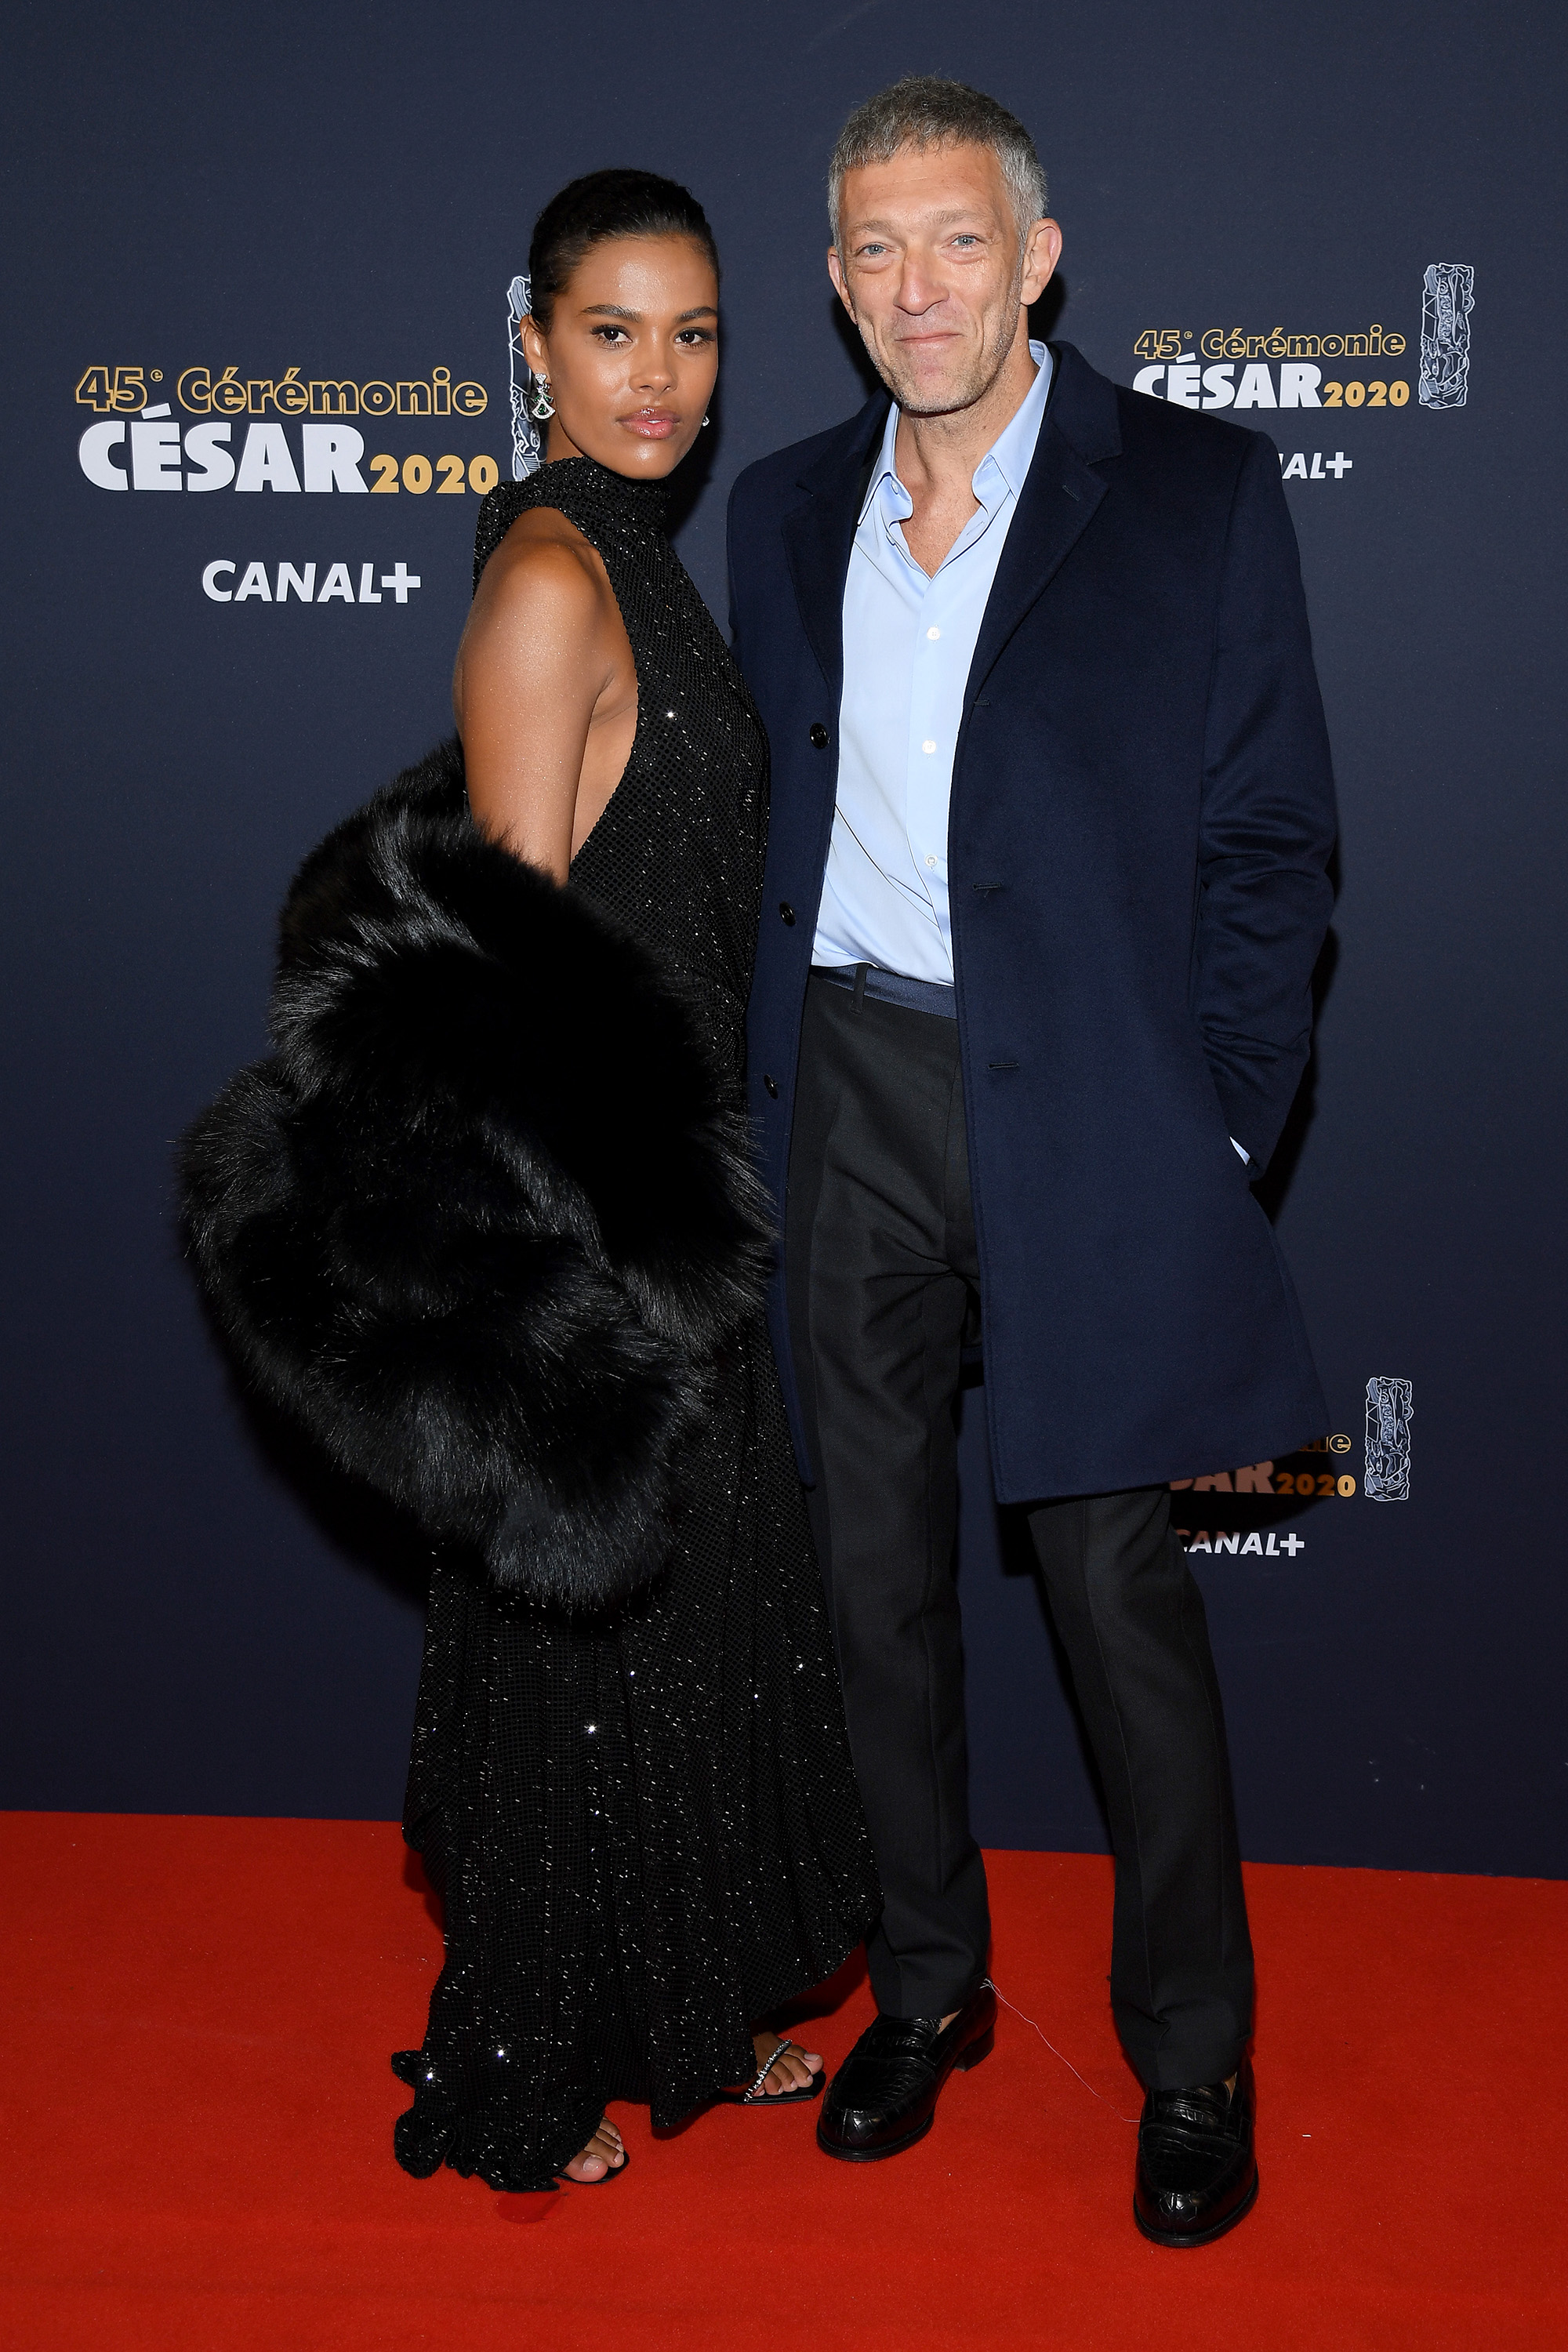 PARIS, FRANCE - FEBRUARY 28: Tina Kunakey and Vincent Cassel arrives at the Cesar Film Awards 2020 Ceremony At Salle Pleyel In Paris on February 28, 2020 in Paris, France. (Photo by Pascal Le Segretain/Getty Images)